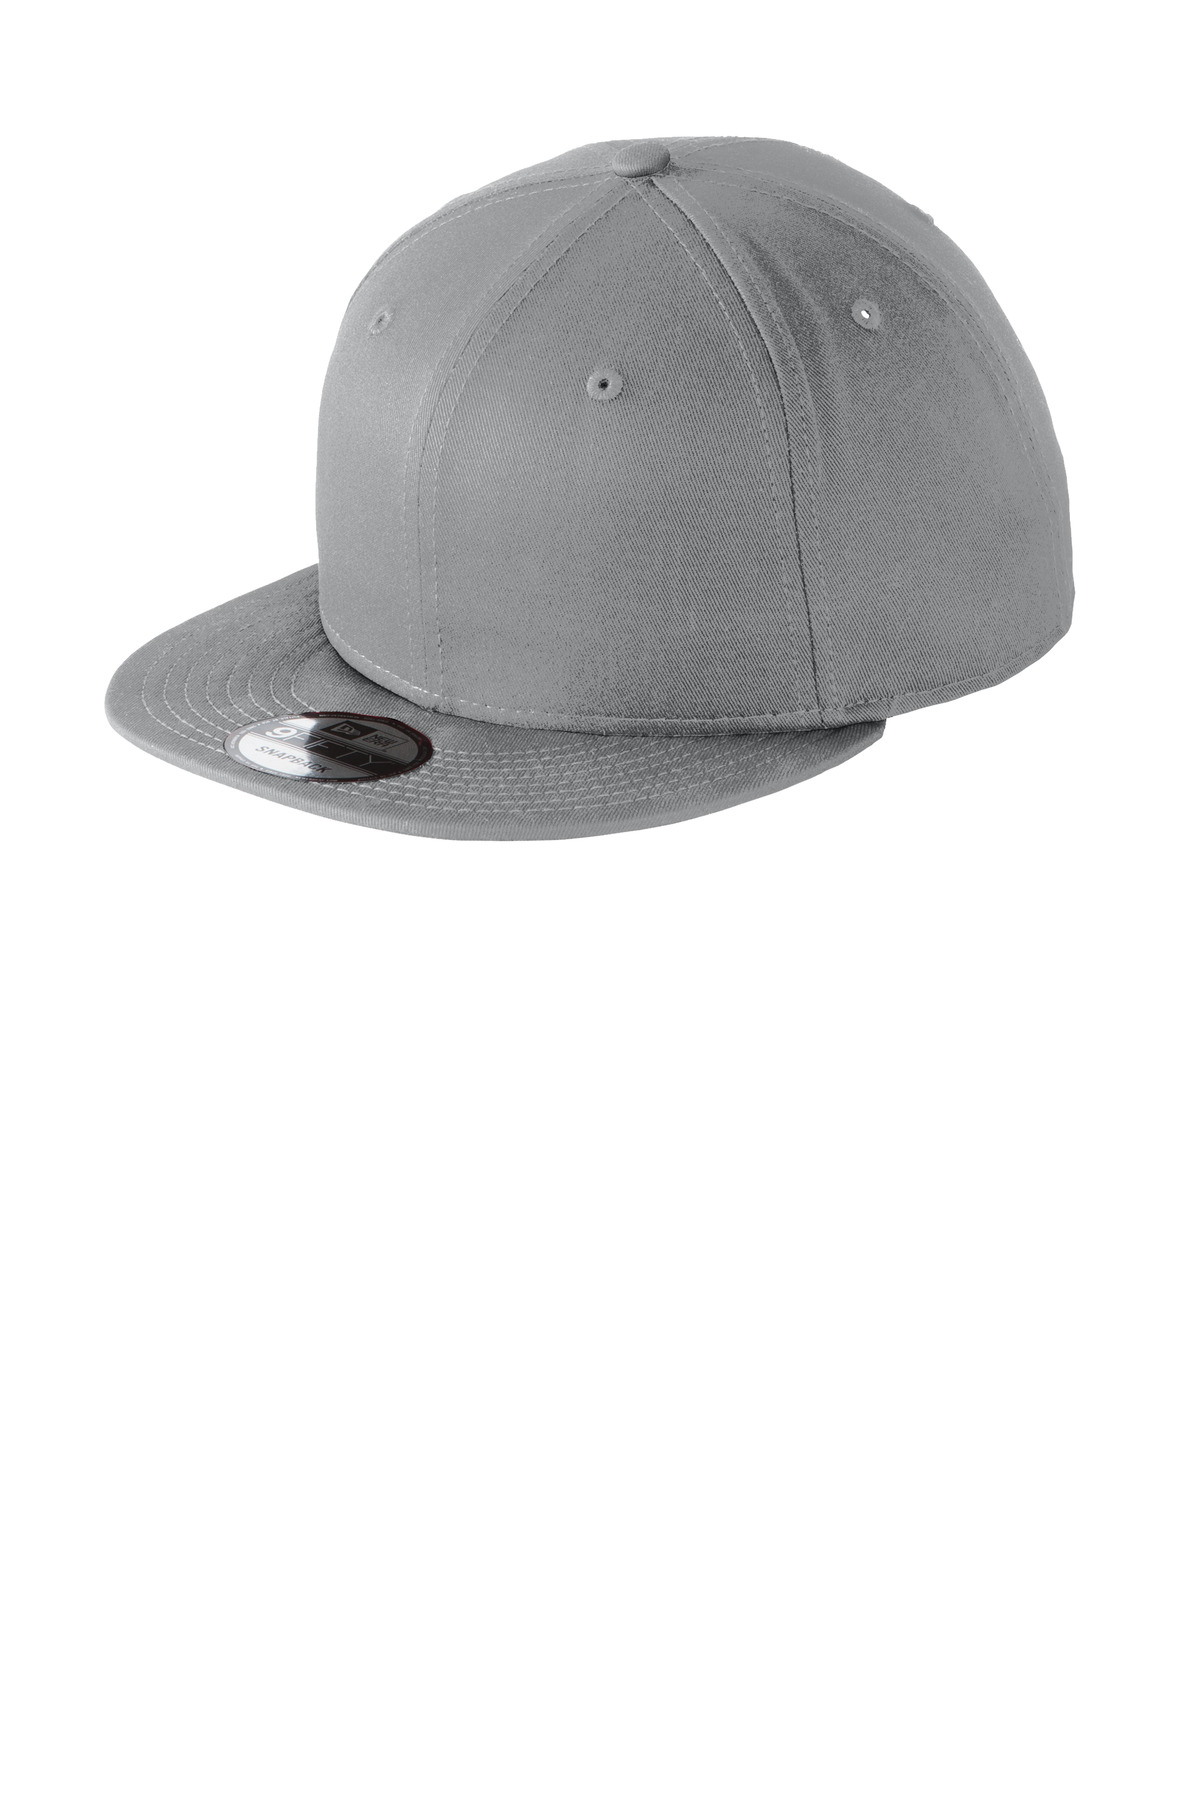 New Era ®  - Flat Bill Snapback Cap. NE400 - Grey